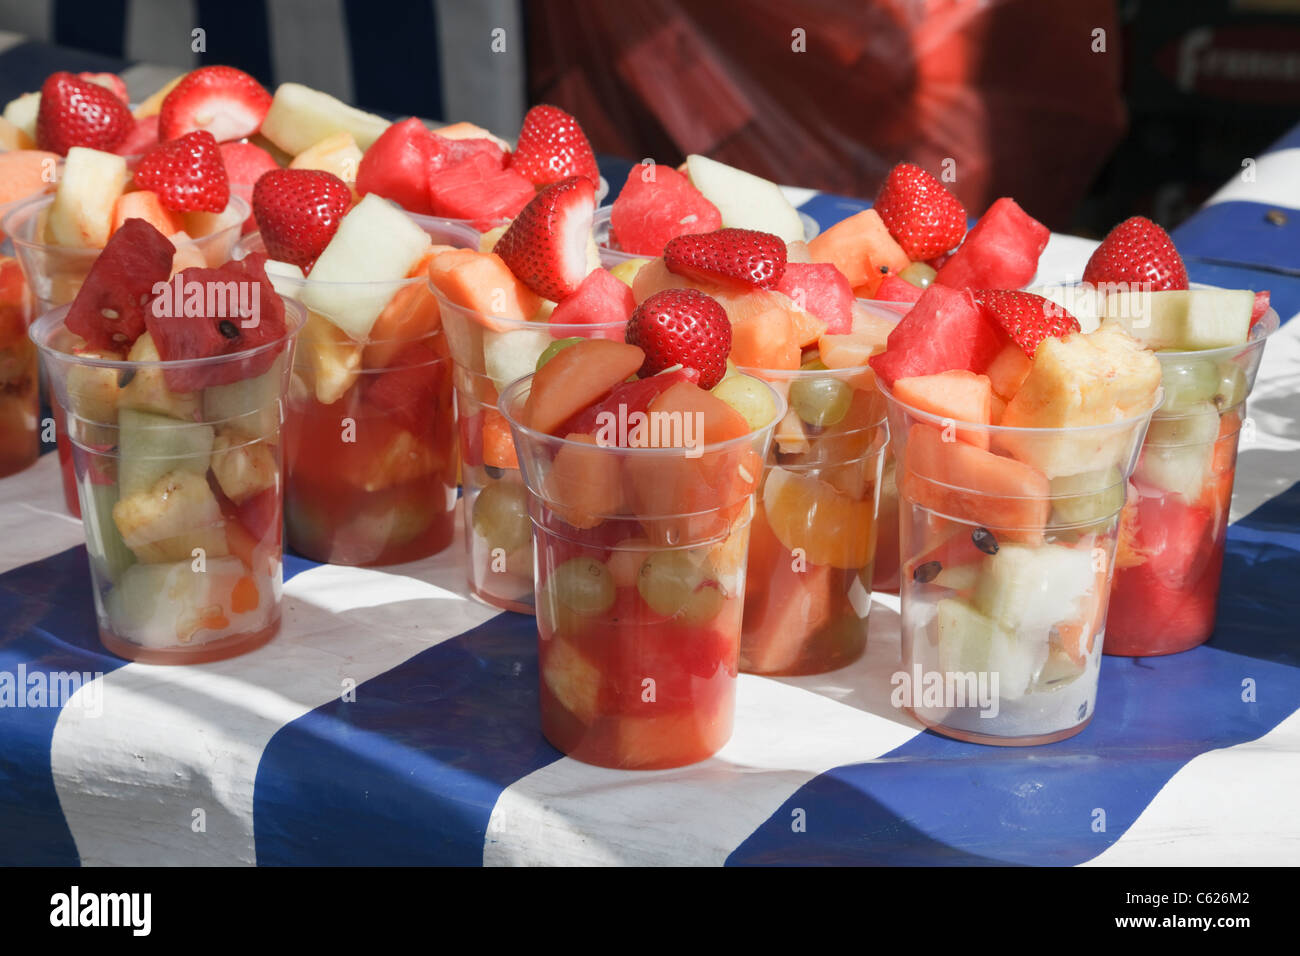 Mixed fresh fruit cocktails for sale in disposable plastic cups on a market stall with blue and white tablecloth - Stock Image